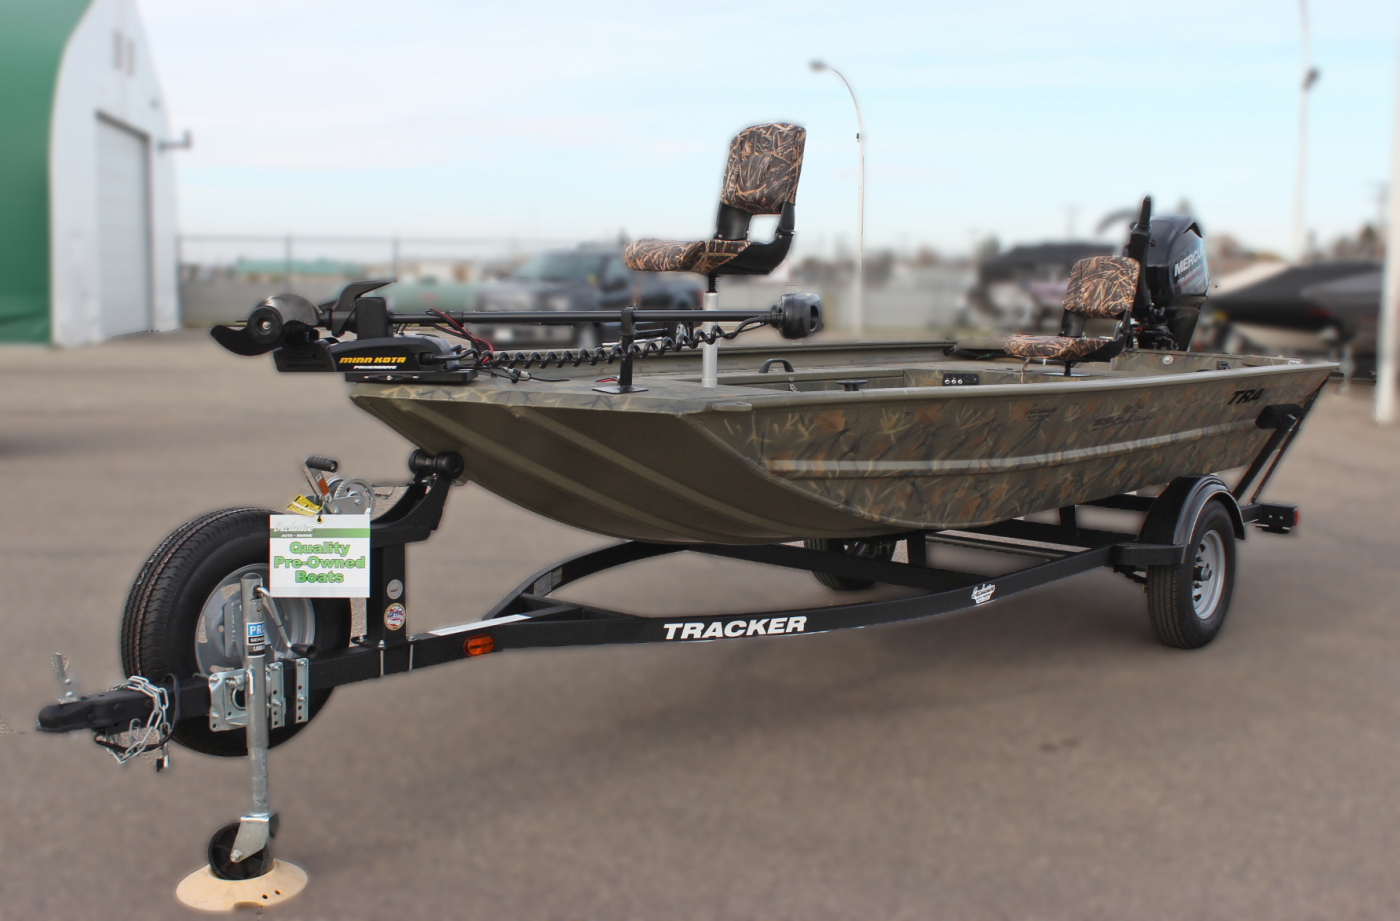 Tracker Grizzly 1654 Sportsman Mvx Blind Duck Edition